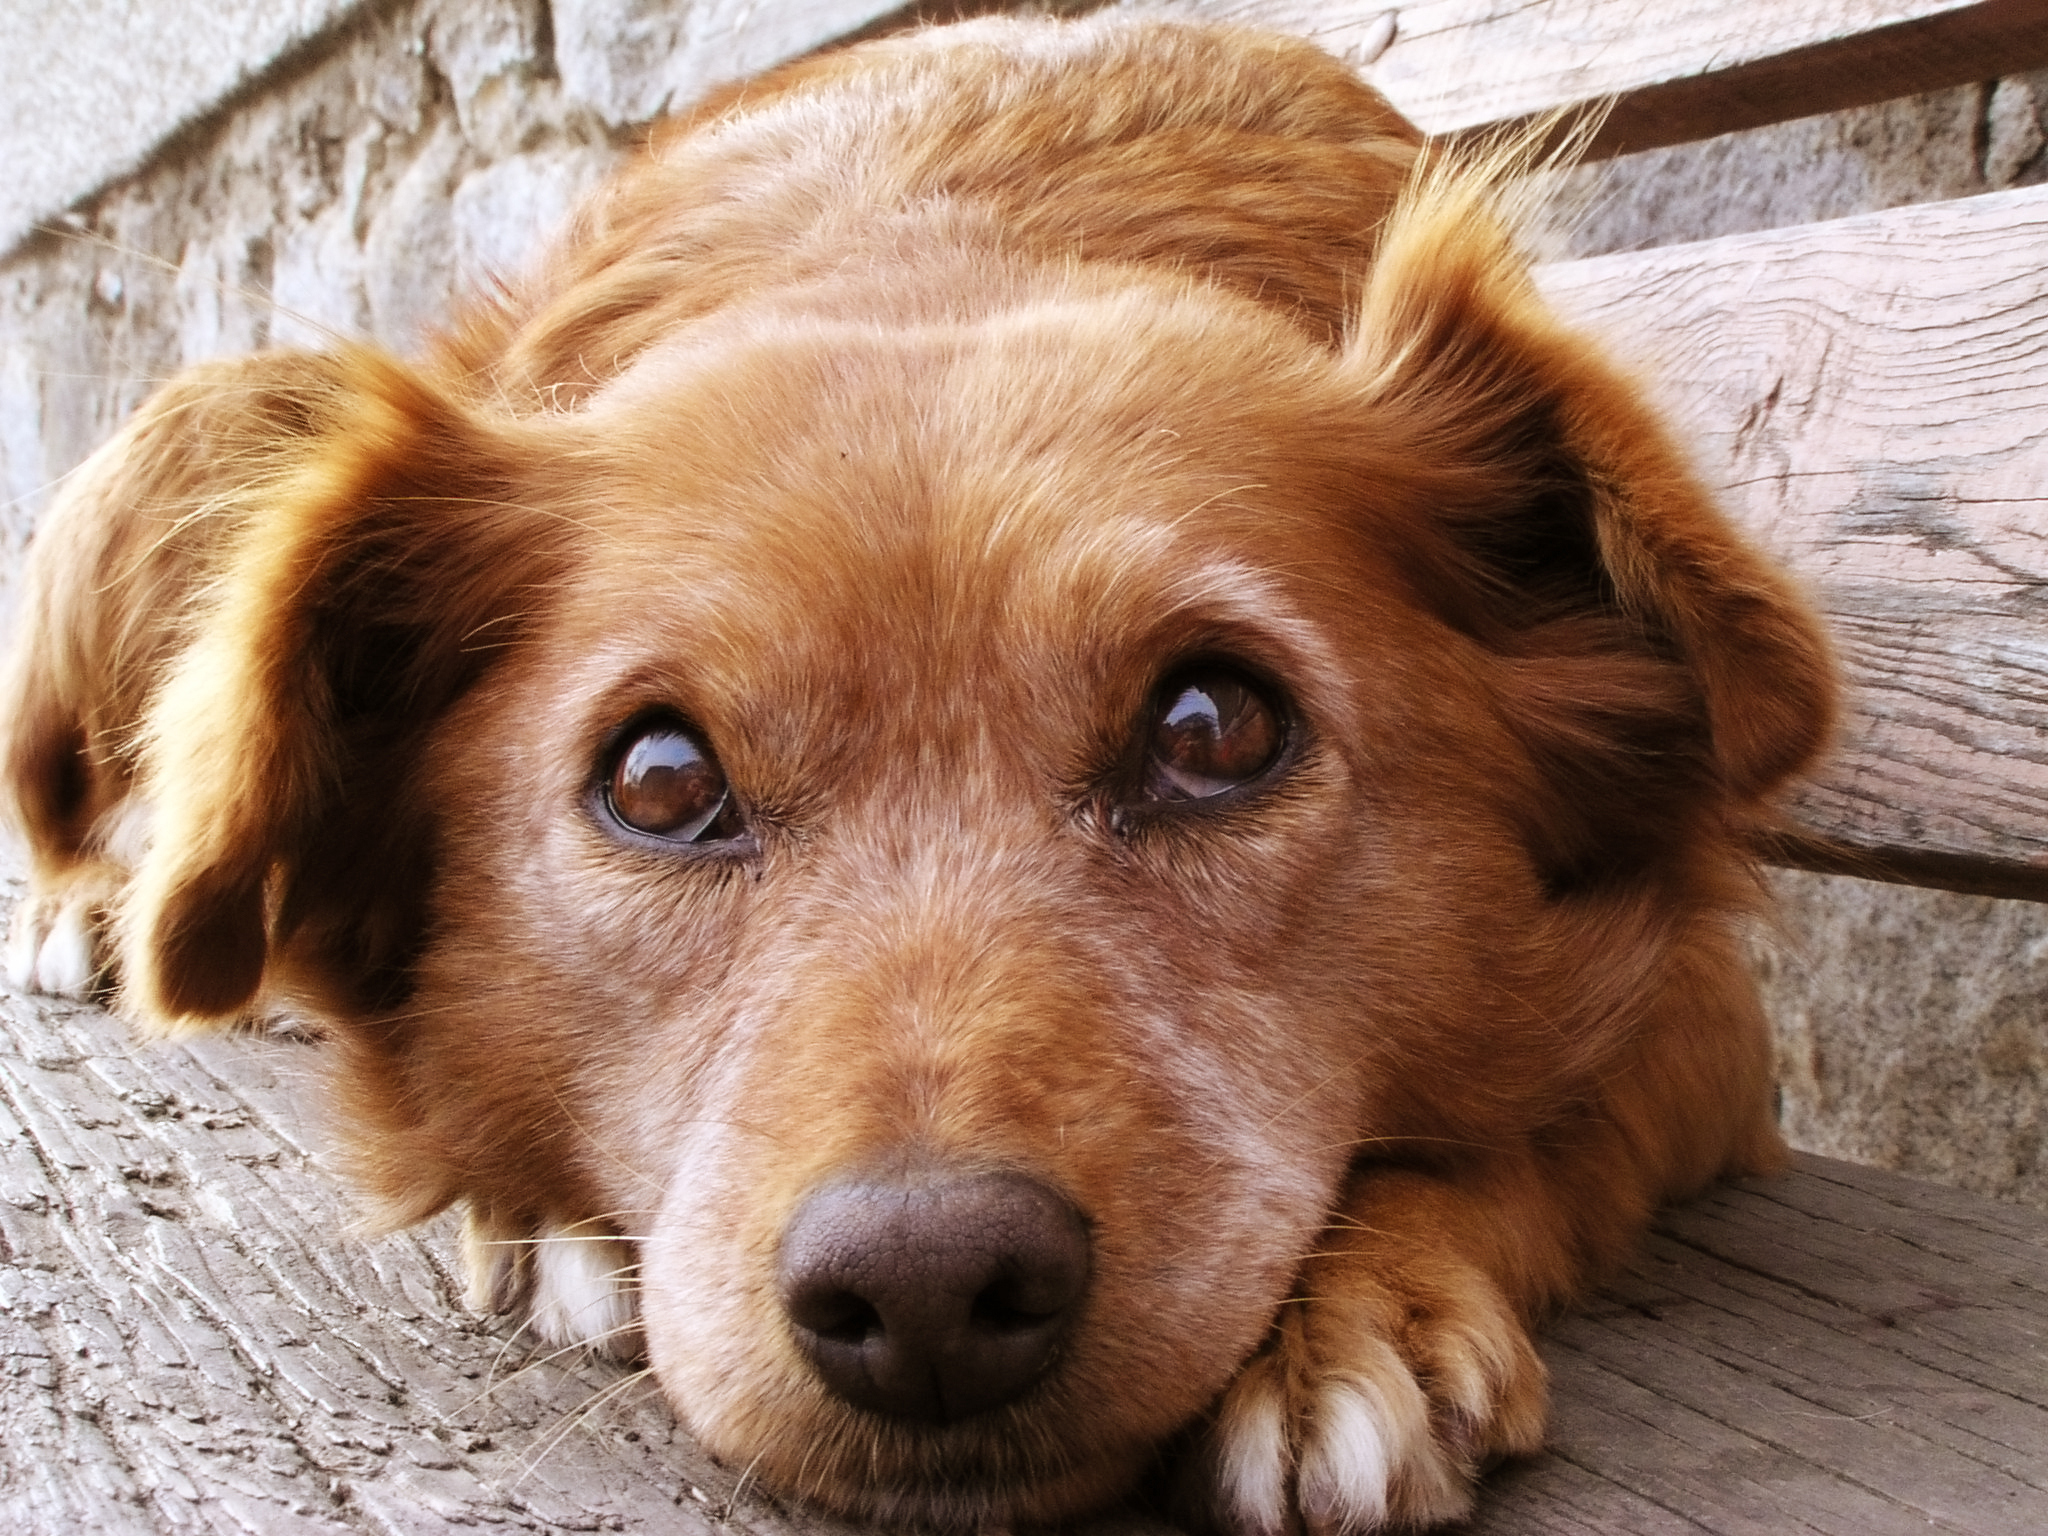 dog-how-to-select-your-new-best-friend-thinkstock99062463.jpg